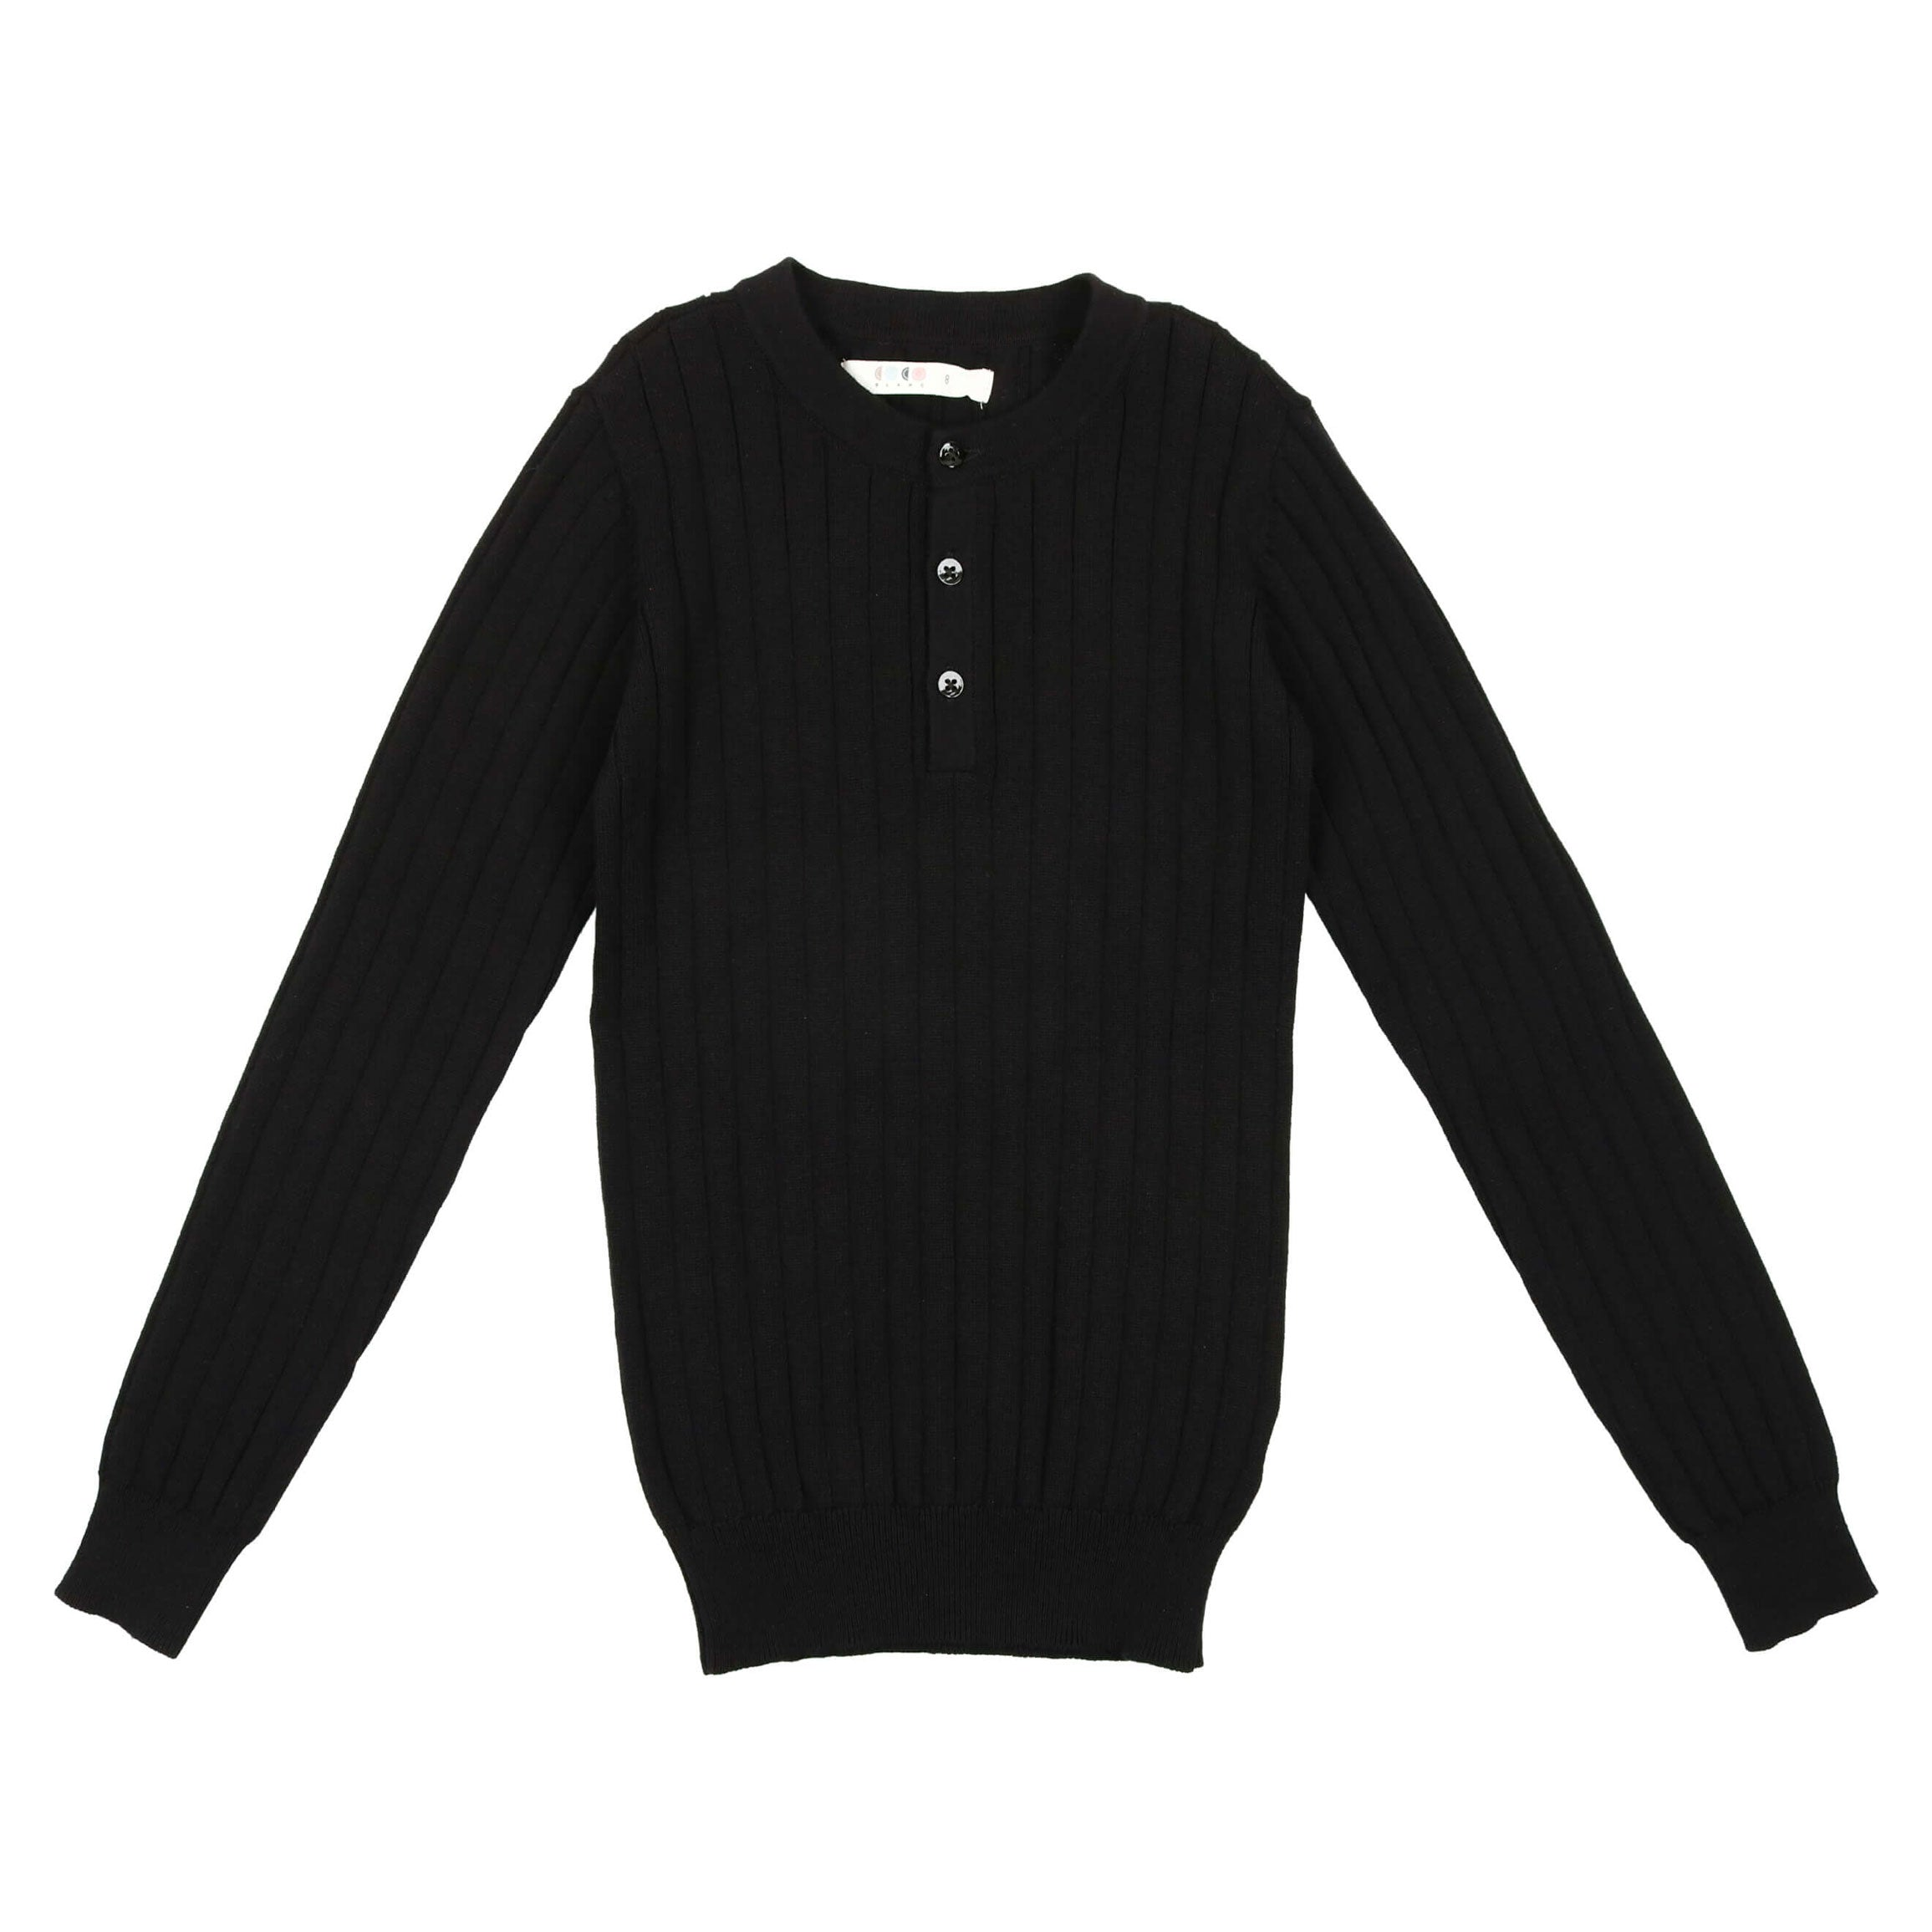 Coco Blanc Black Button Ribbed Sweater